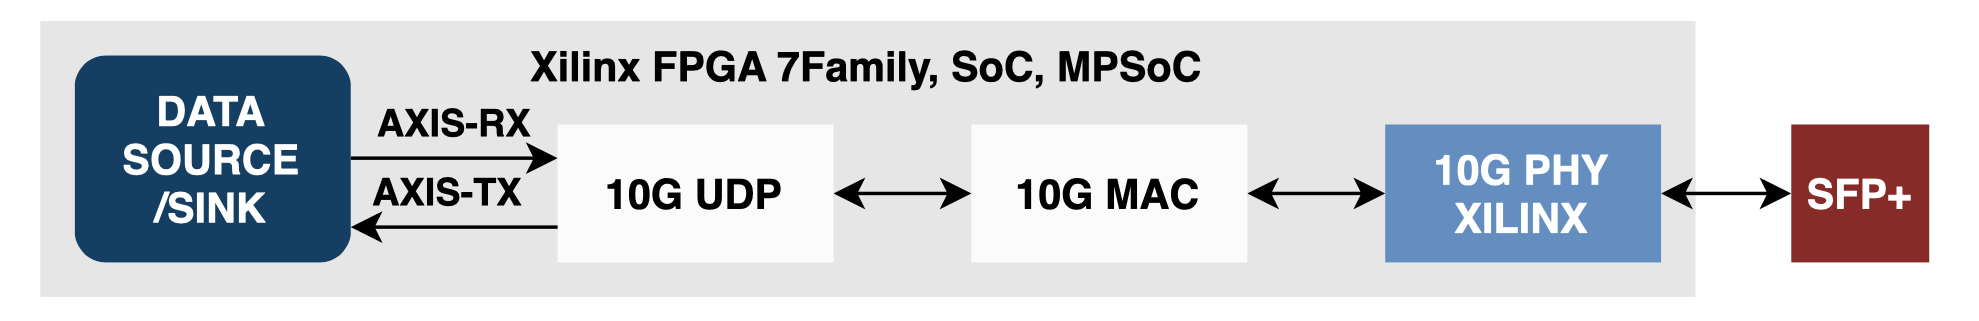 zynqus+ networking 10G udp